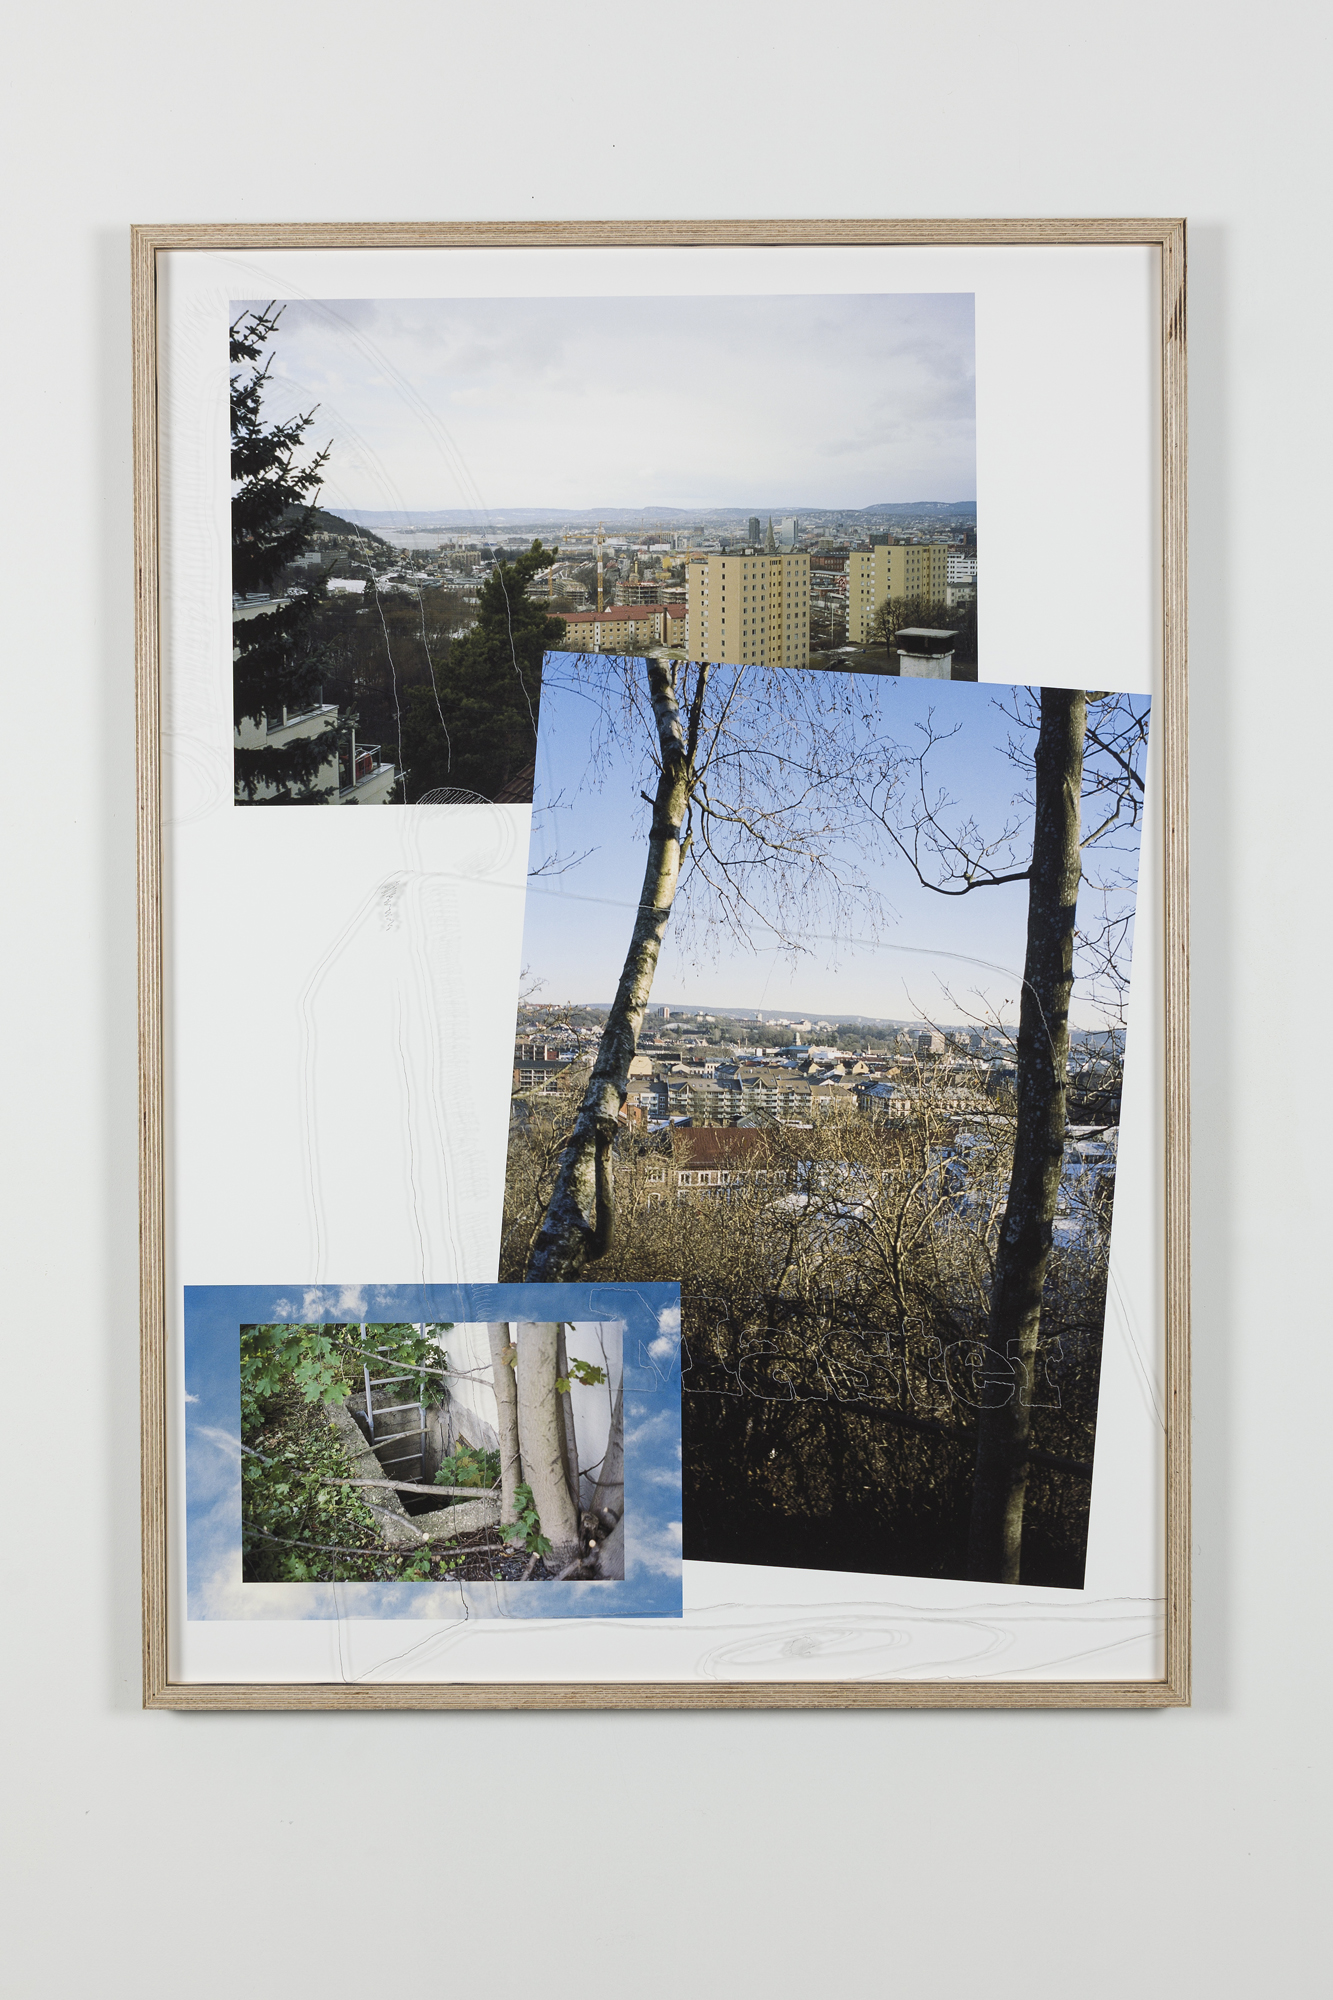 Jon Benjamin Tallerås, Untitled (Lock Picking is Key) IV, 2019, inkjet print, scratched ar-glass, artist made frame, 63 x 90 cm, unique